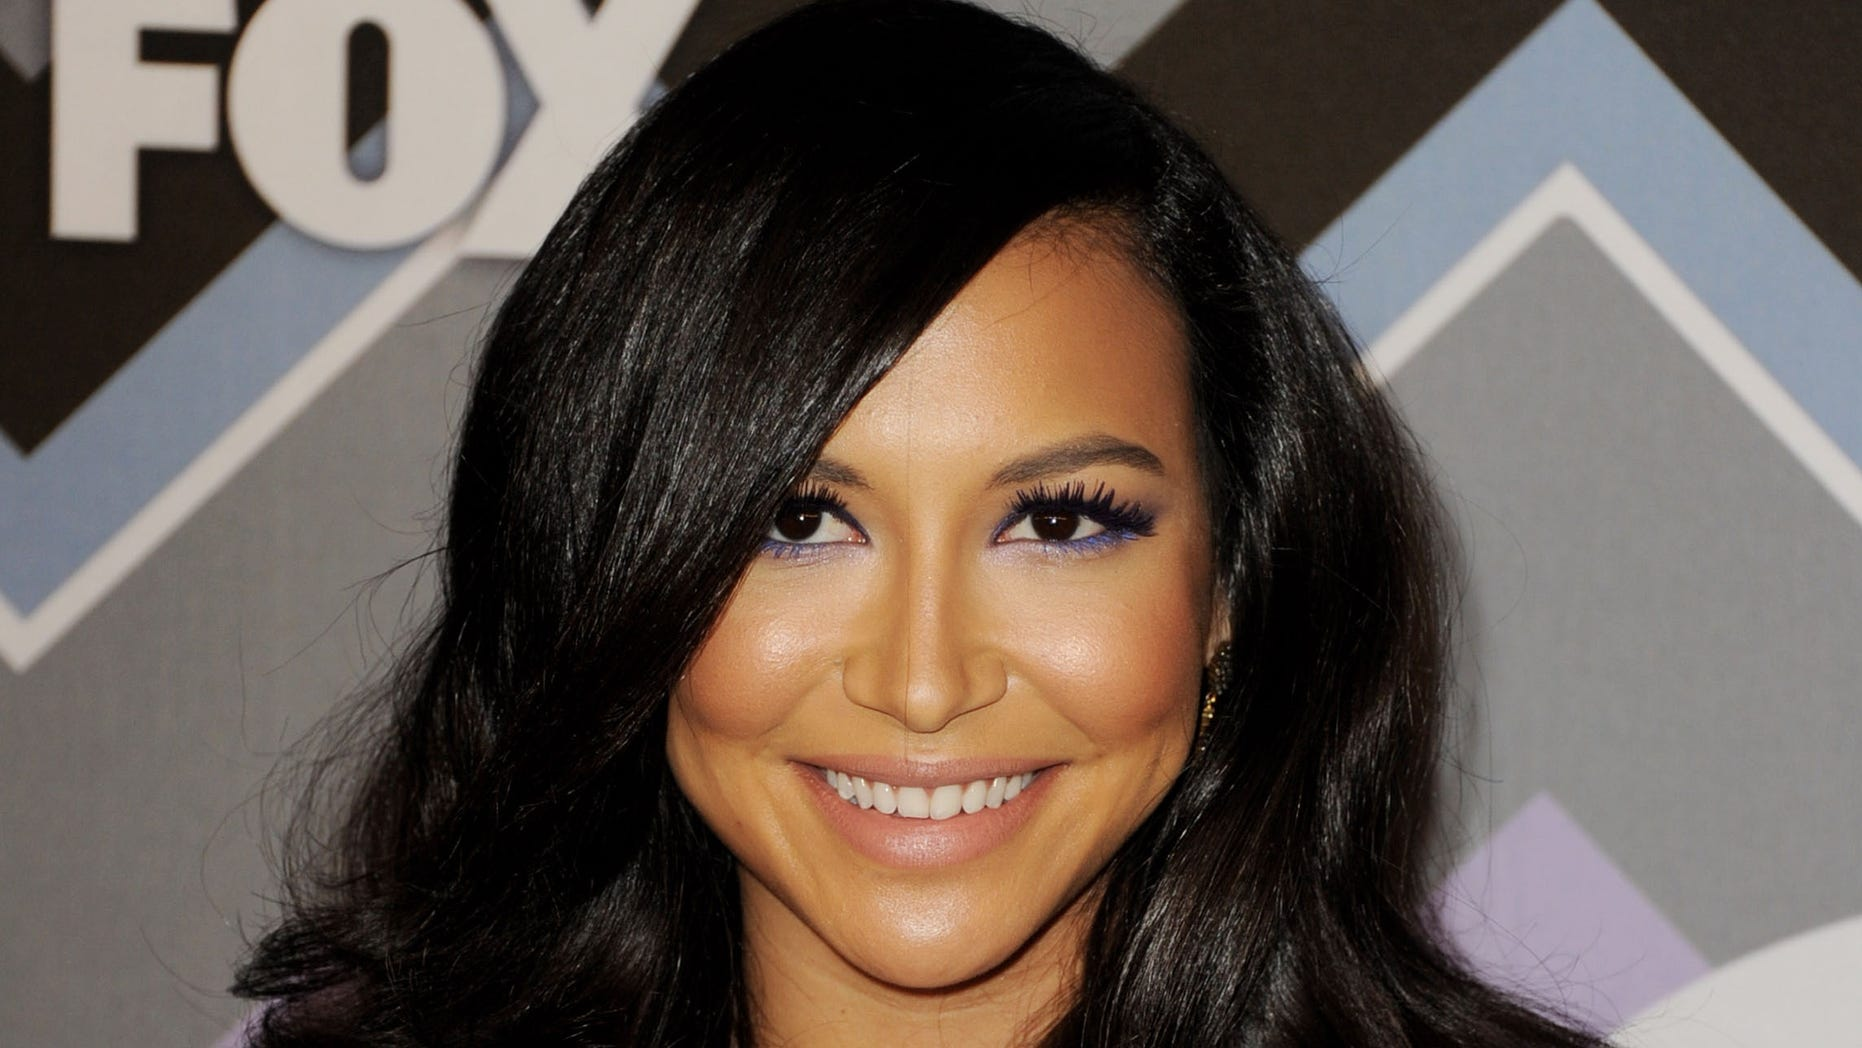 PASADENA, CA - JANUARY 08:  Actress Naya Rivera arrives at the FOX All-Star Party at the Langham Huntington Hotel on January 8, 2013 in Pasadena, California.  (Photo by Kevin Winter/Getty Images)